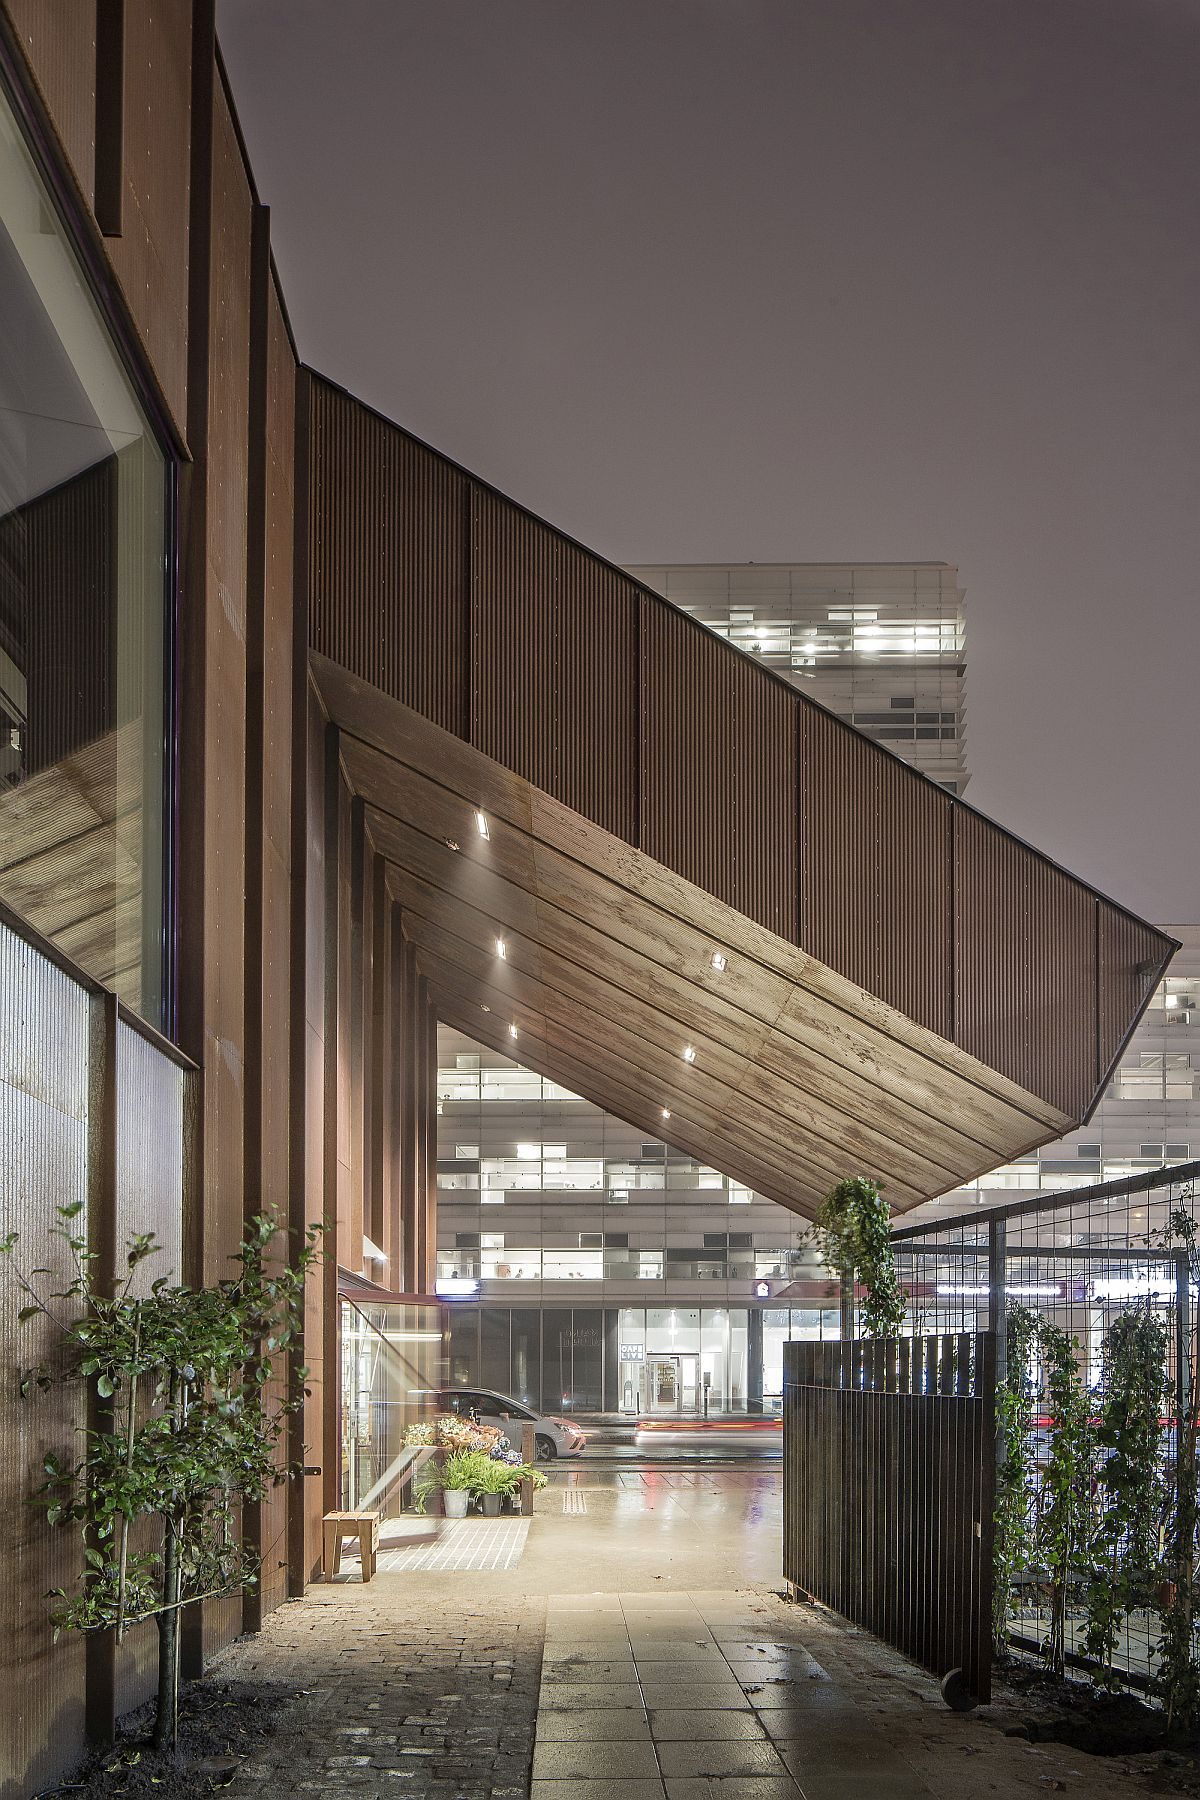 Natural vegetation fills the spaces between the old and new structure